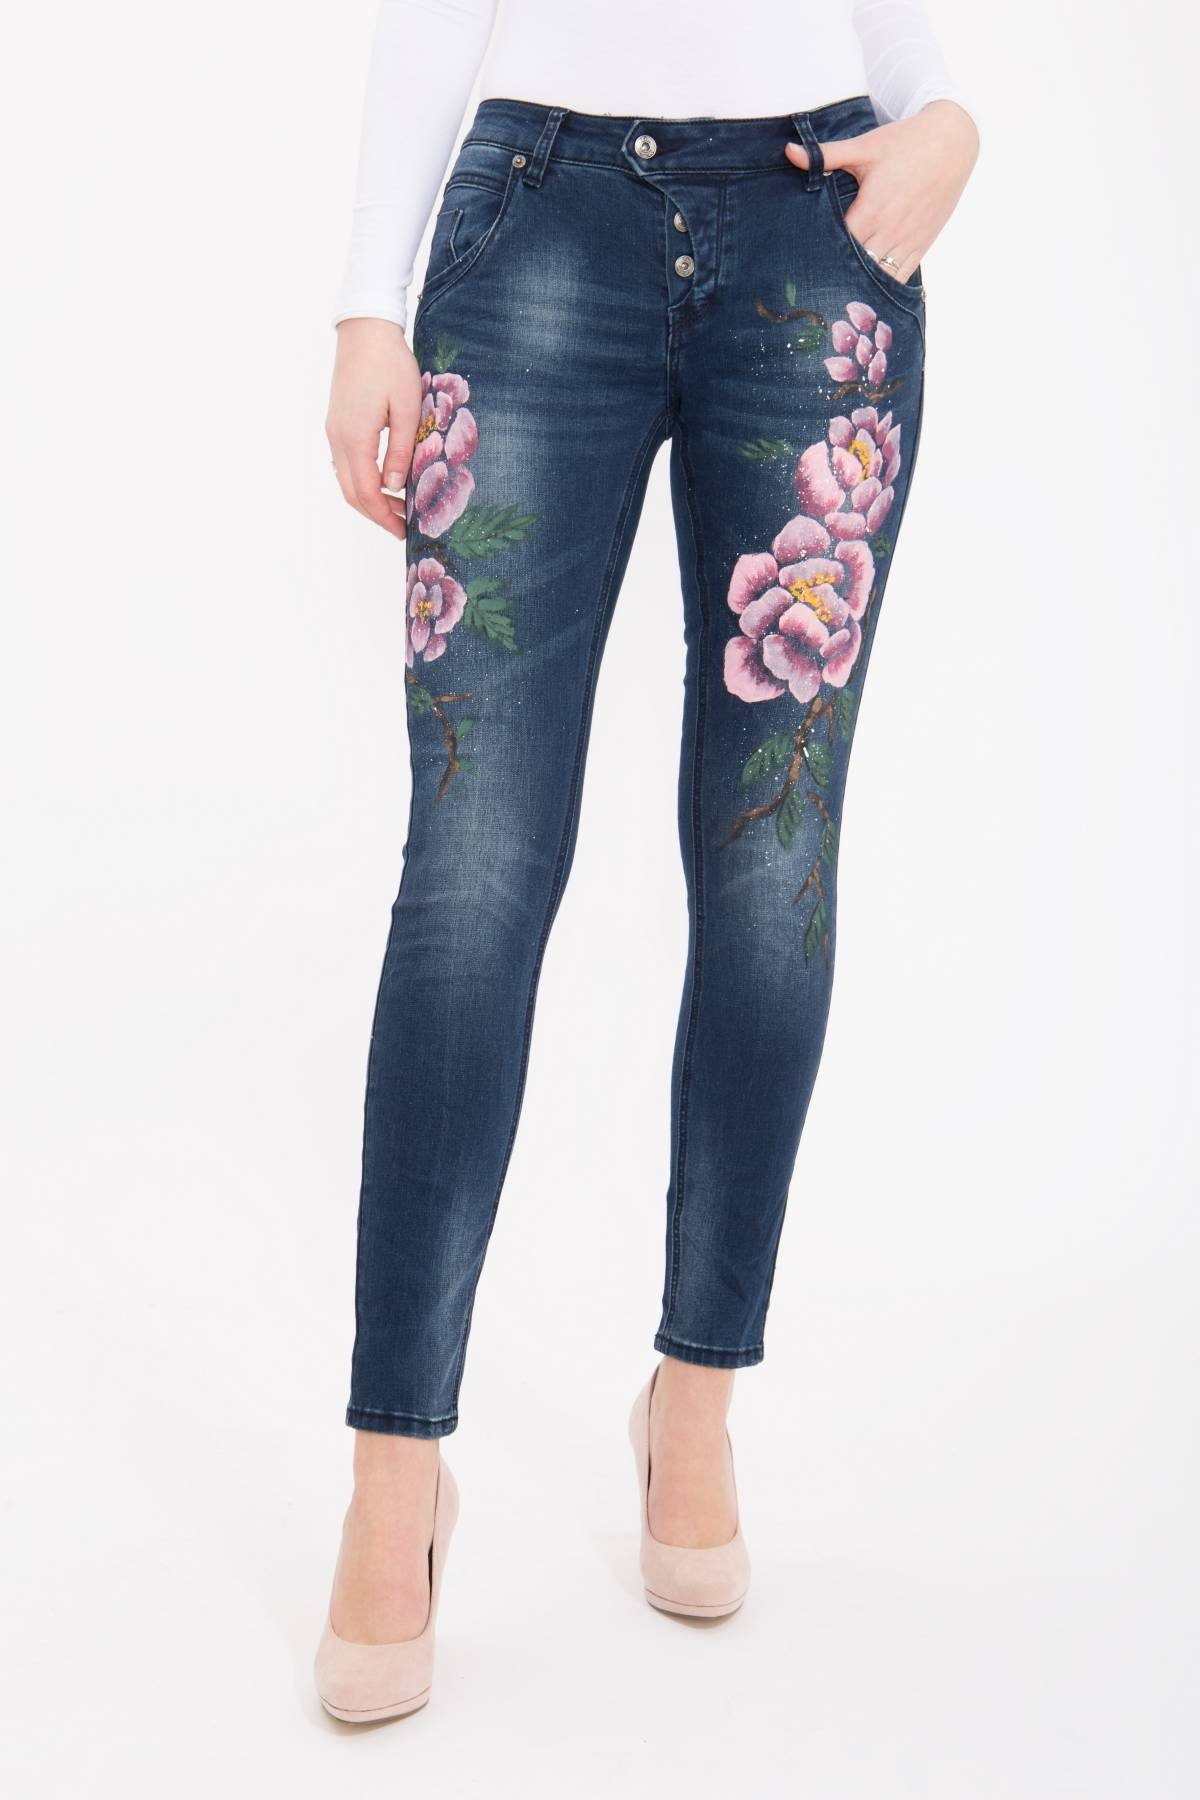 Blue Monkey Skinny-fit-Jeans Manie 1467